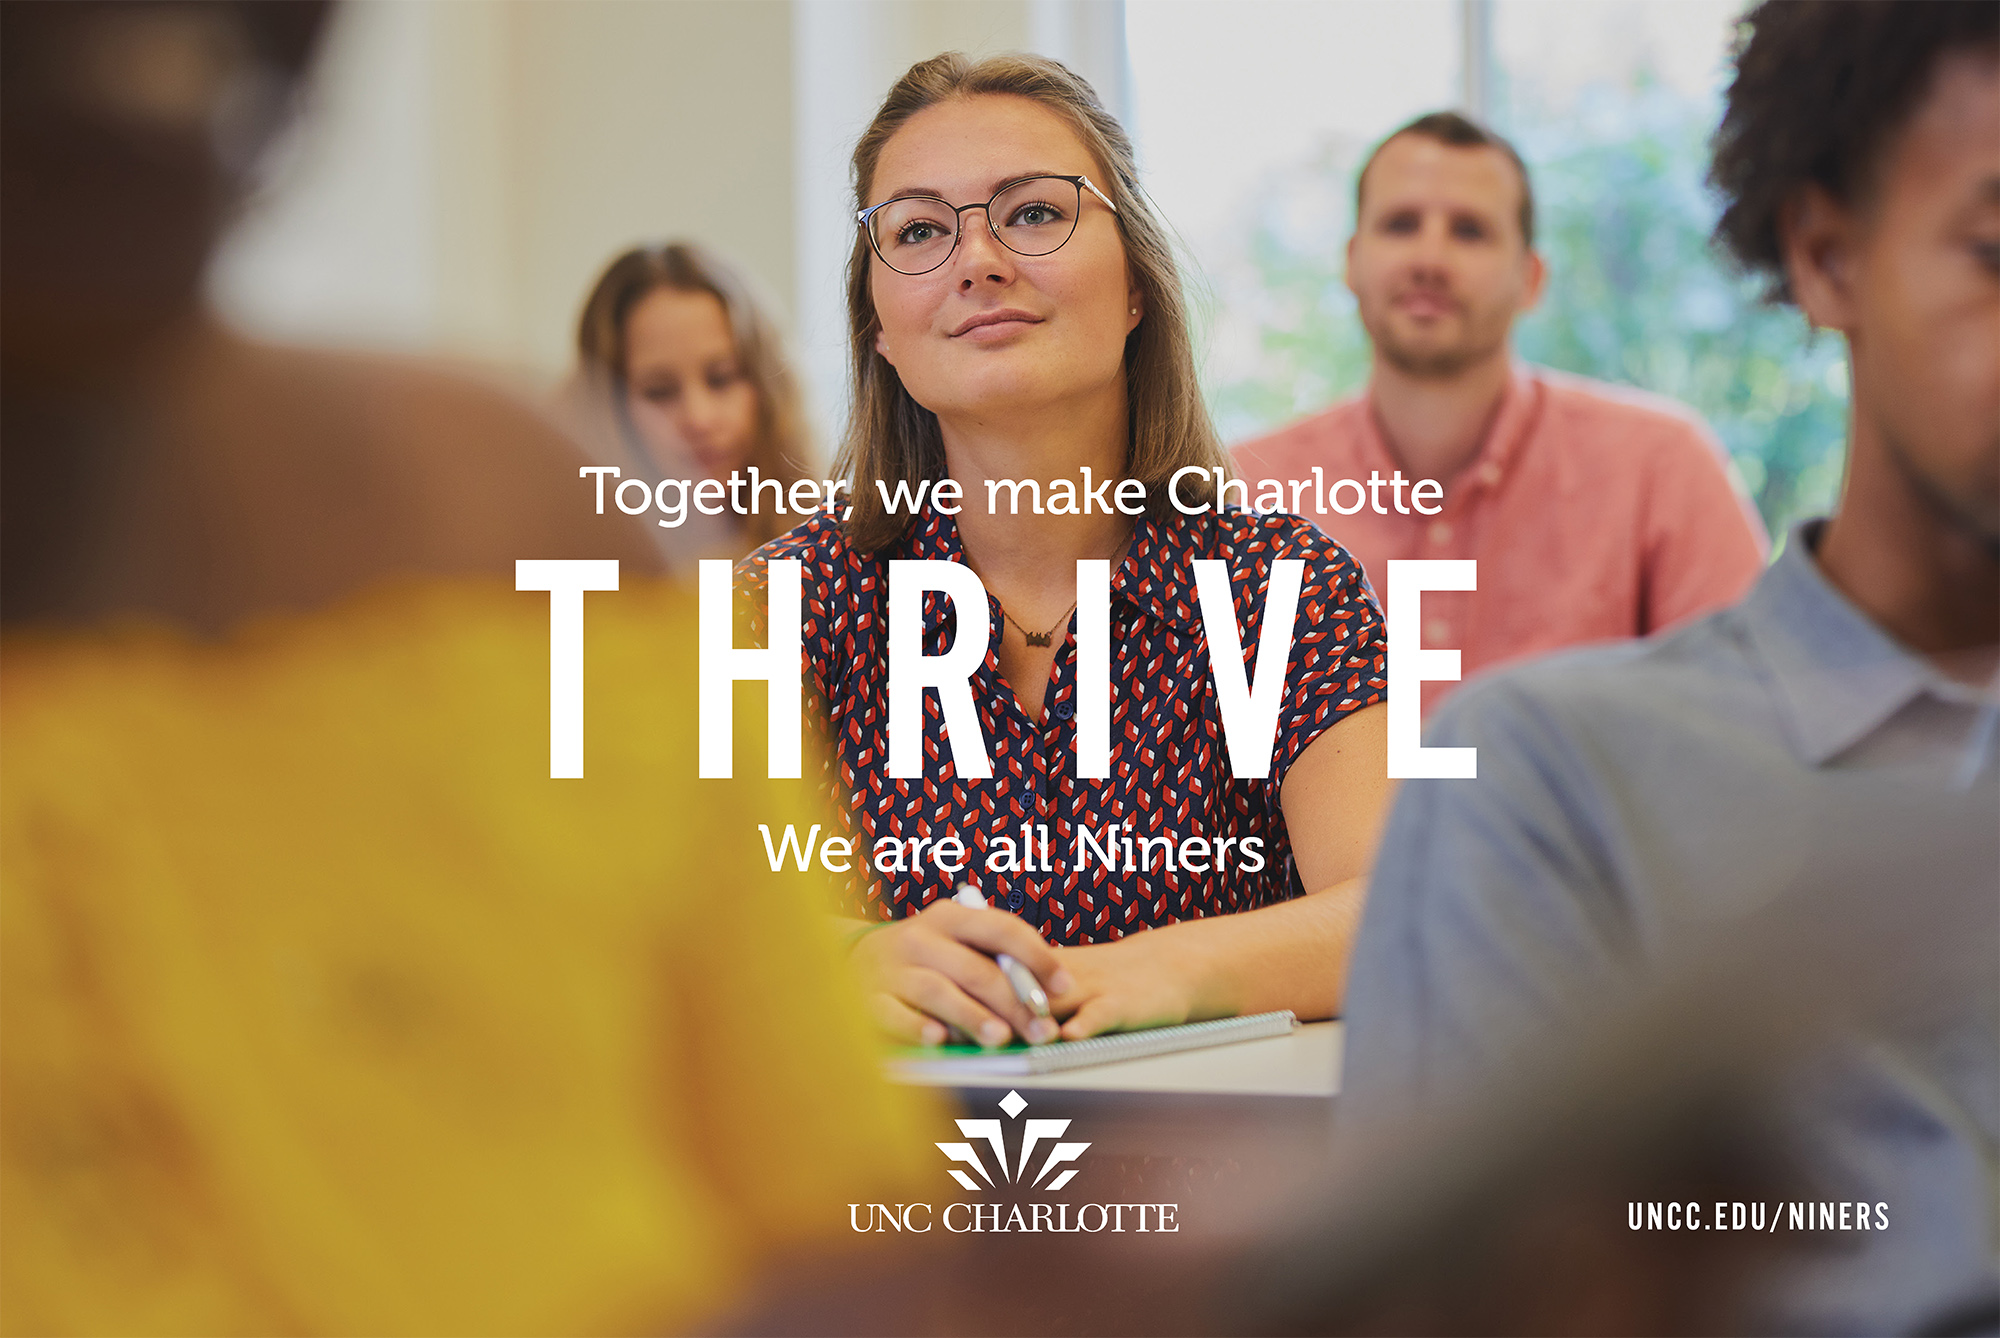 Together, we make Charlotte THRIVE.